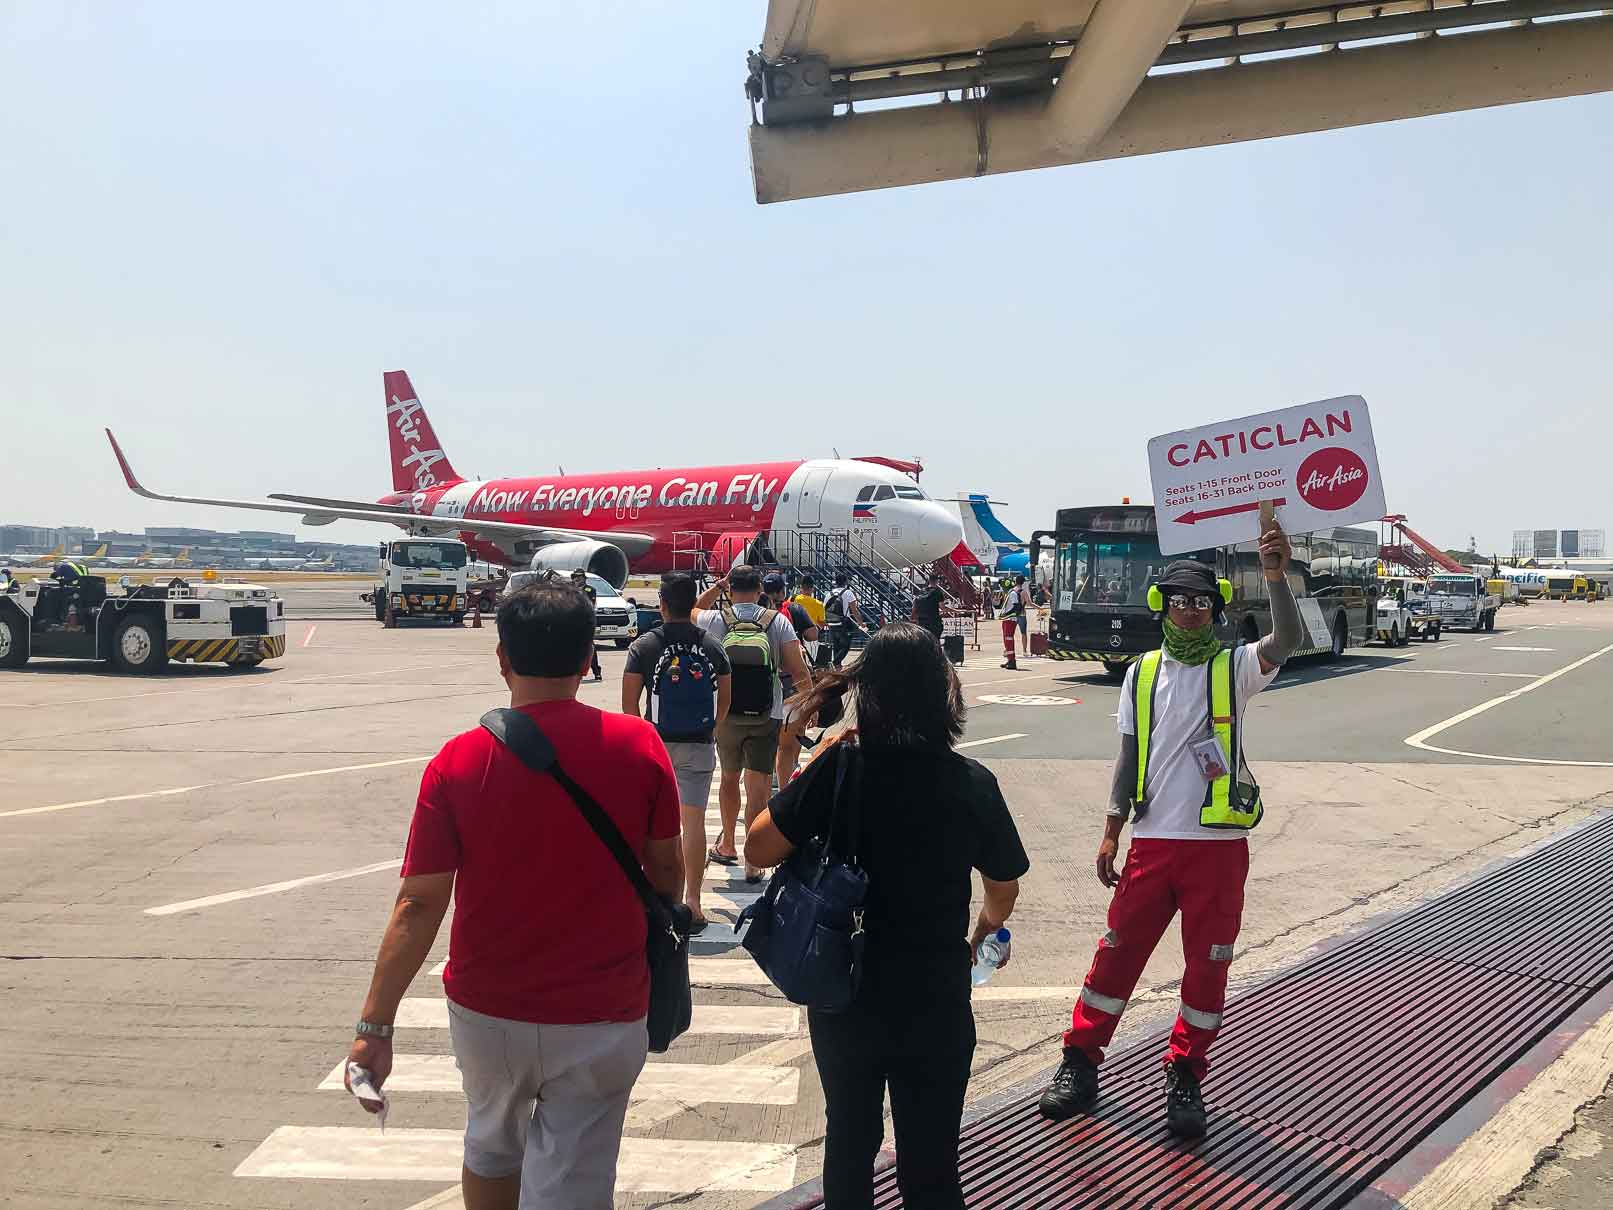 Air Asia flight from Manila to Caticlan